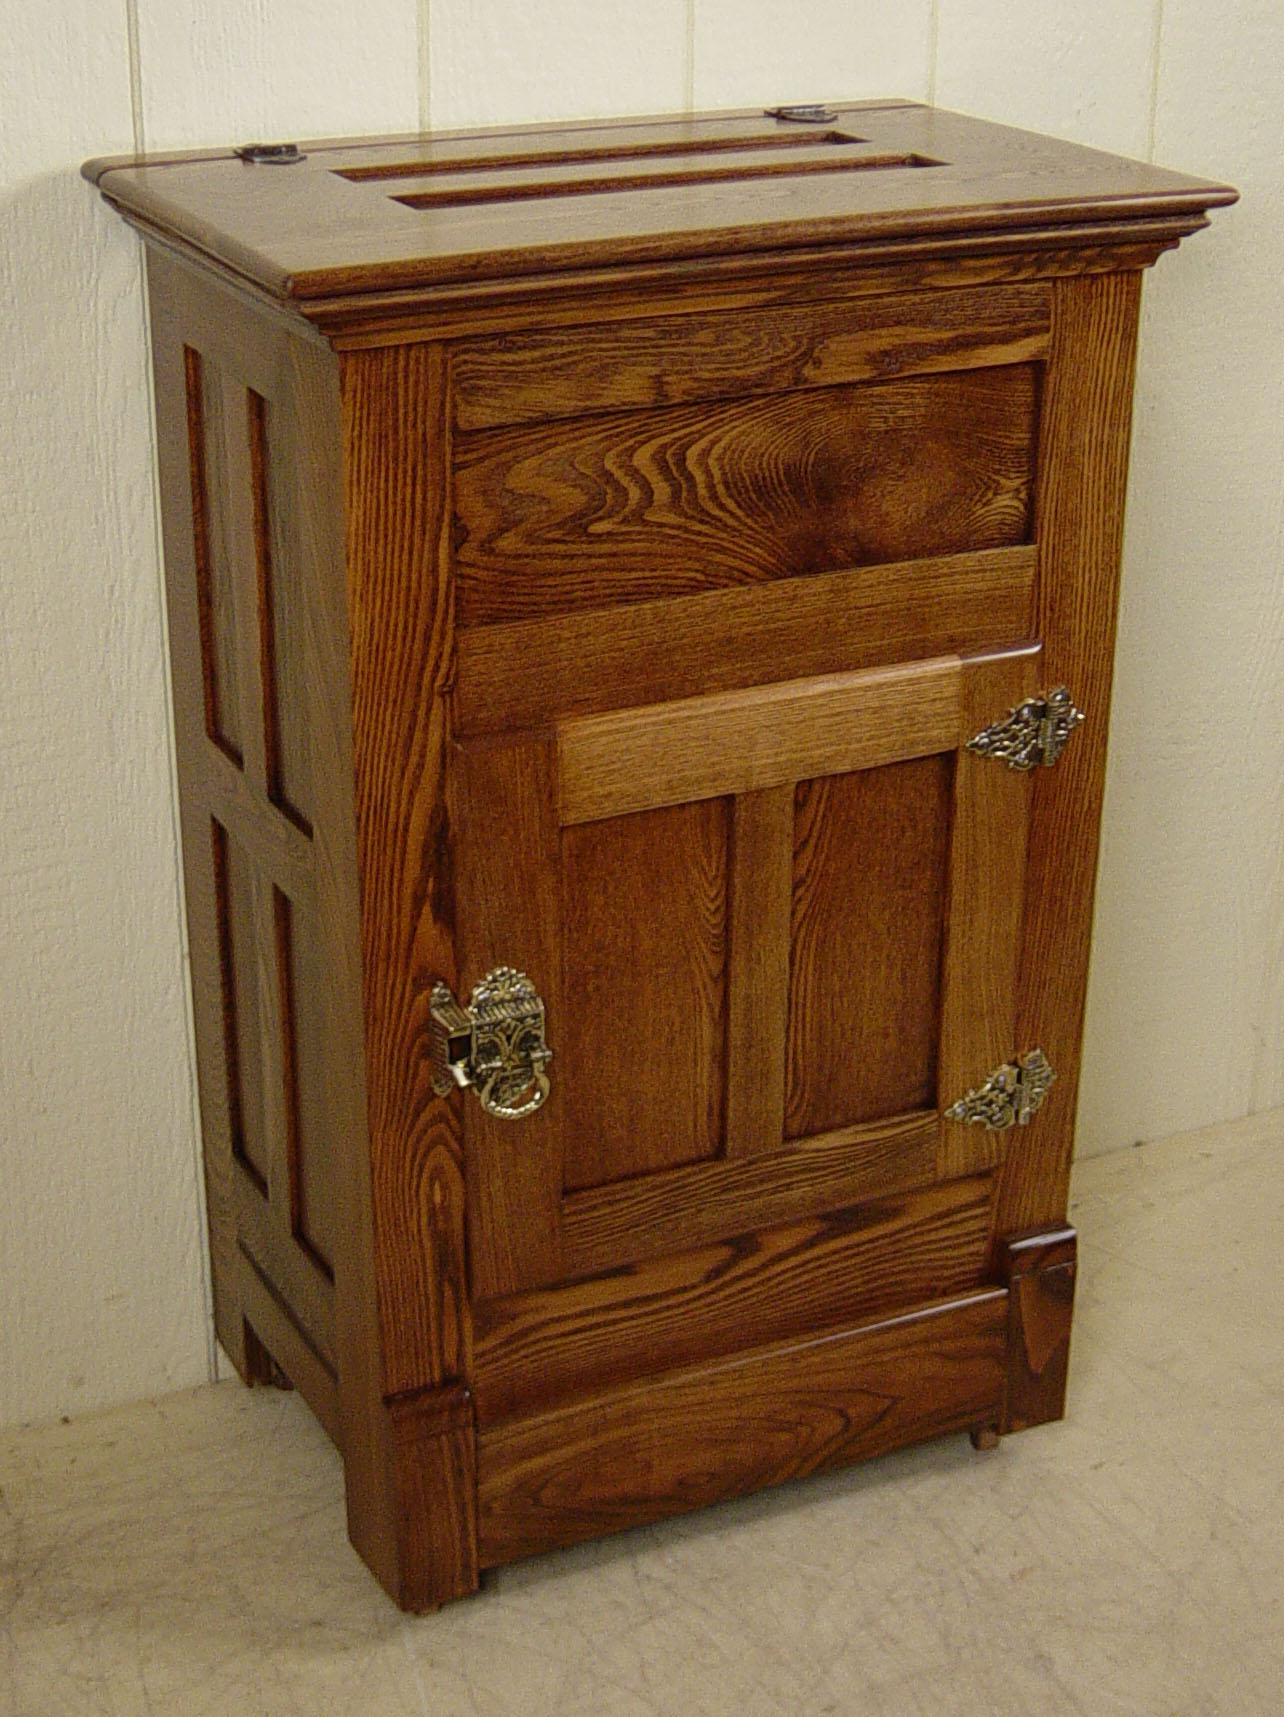 Small lift top apartment size oak ice box for Meuble antique kijiji